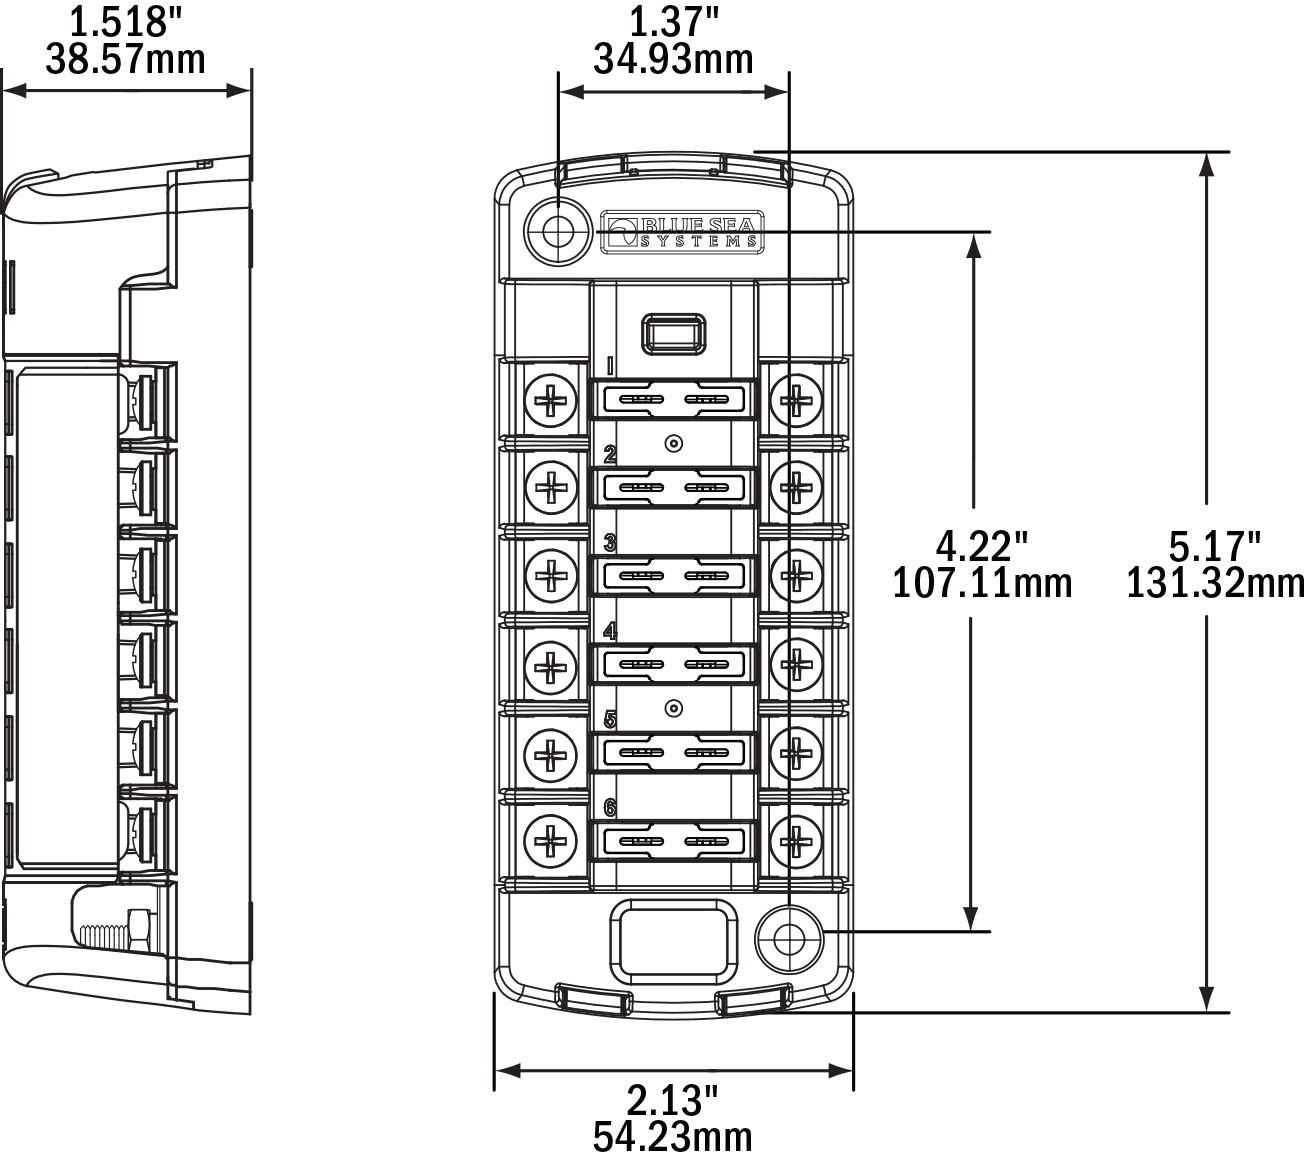 Blue Sea Systems St Blade 6 Position Fuse Block West Marine 12v 1 X 4 Way Box Holder Fuses Wiring Diagram Dimensional Drawing